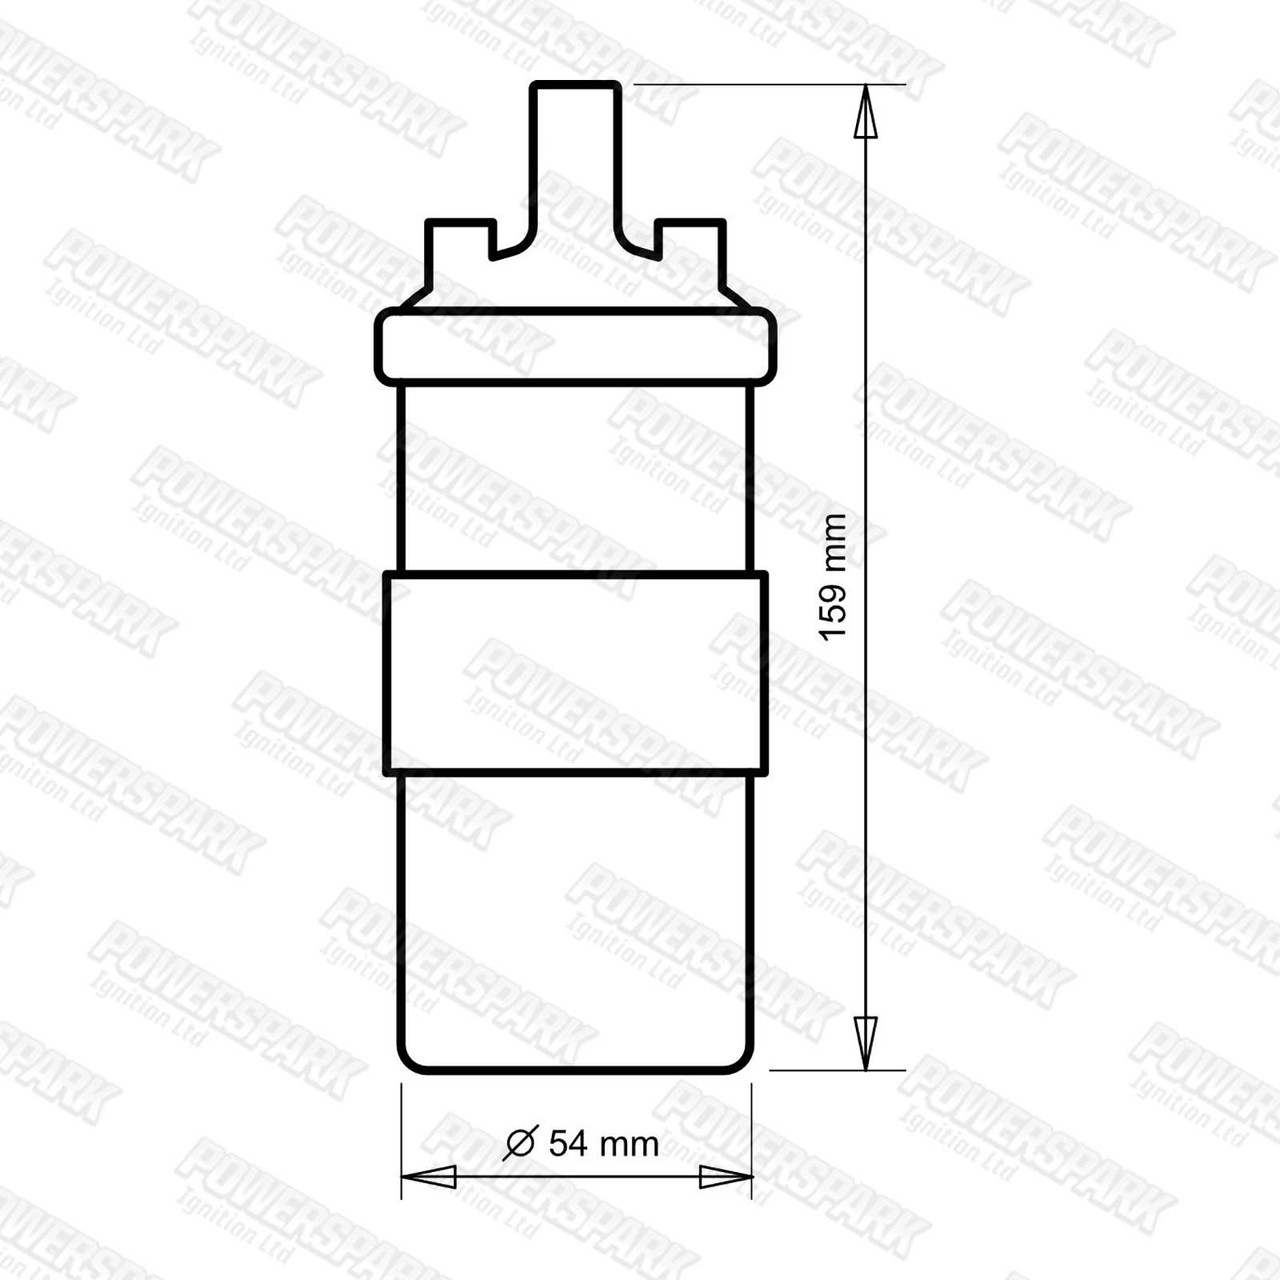 Viper Dry Ignition Coil Sports Ballast replaces DLB110 And DLB102 (VC110 & 08-001)